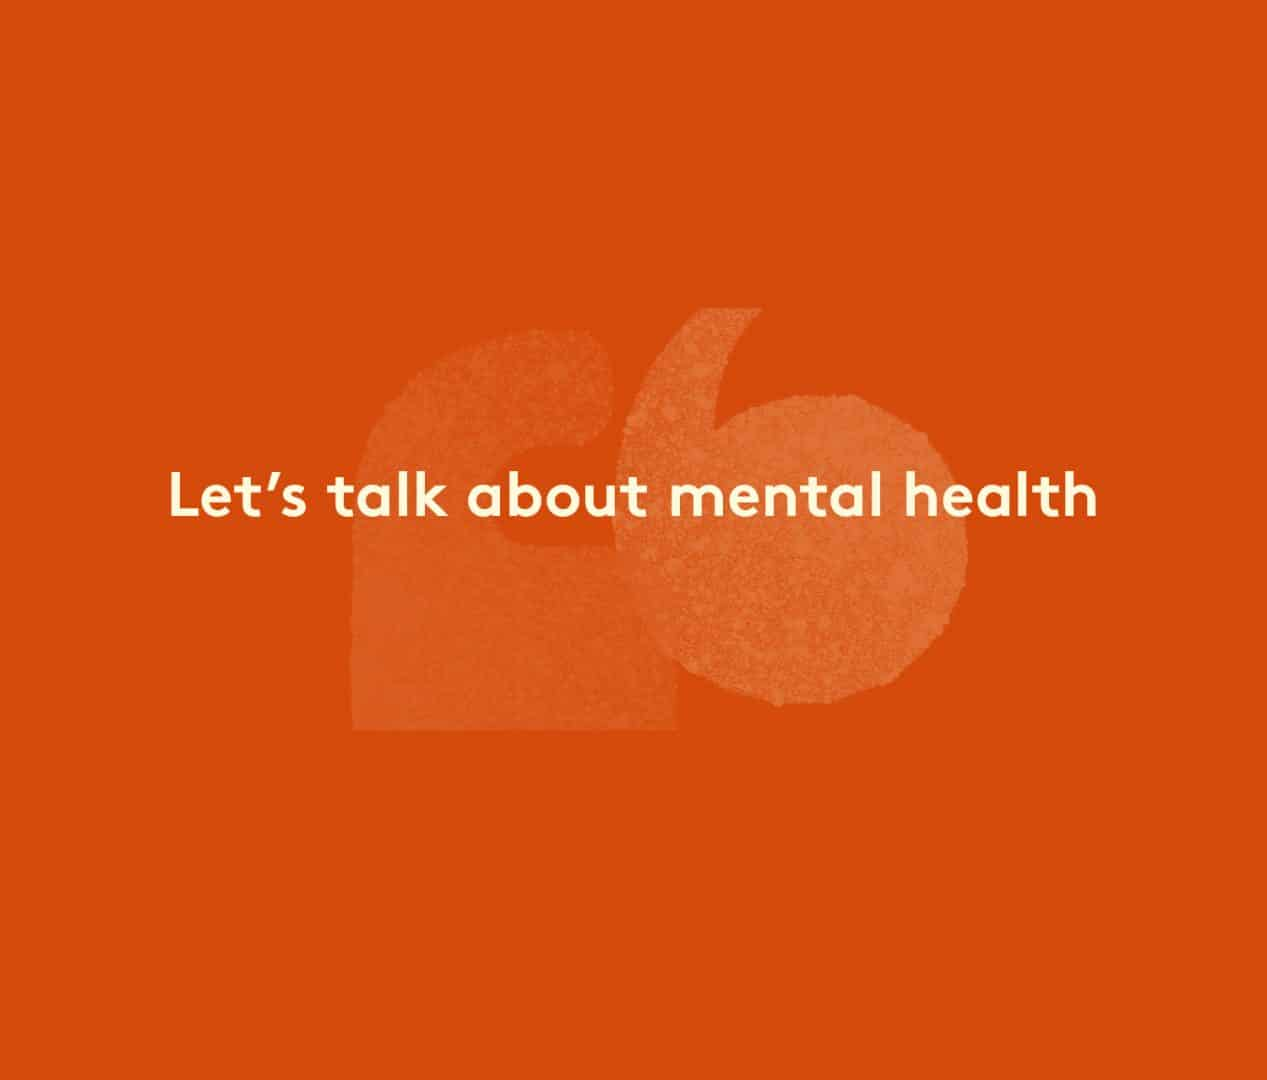 Positive Footprints and Chasing the Stigma - Let's talk about mental health